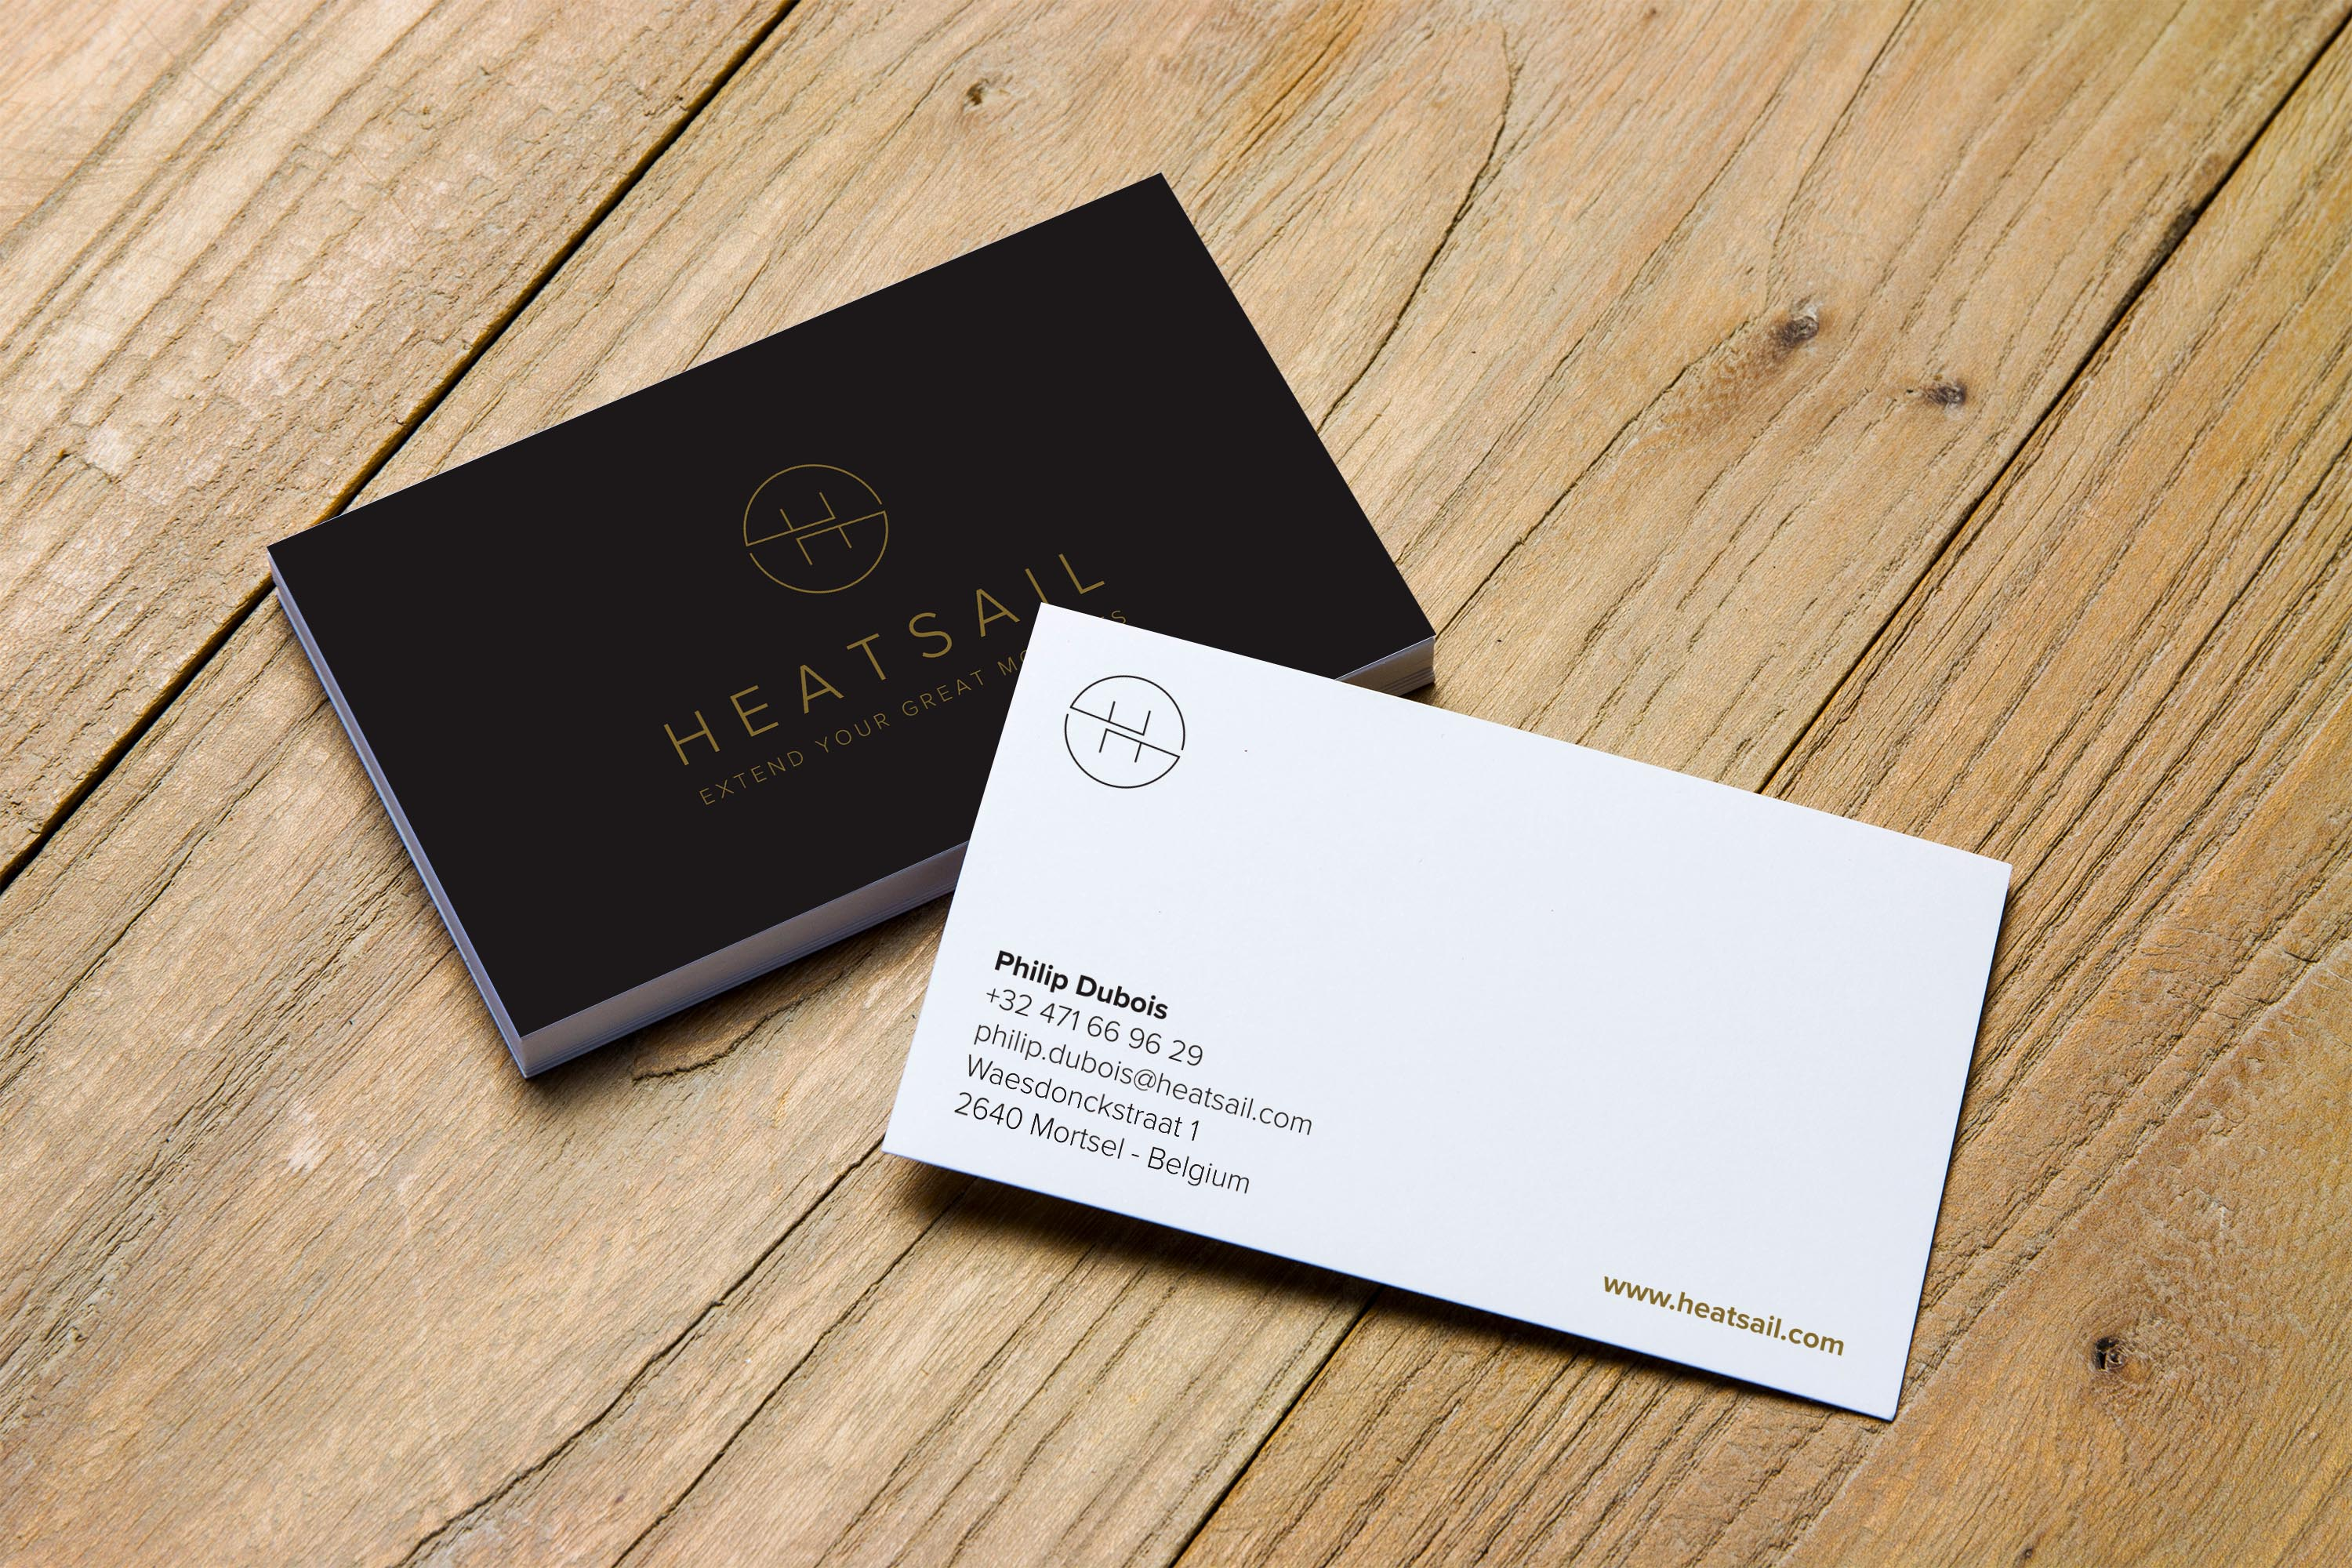 Heatsail business card with gold foil